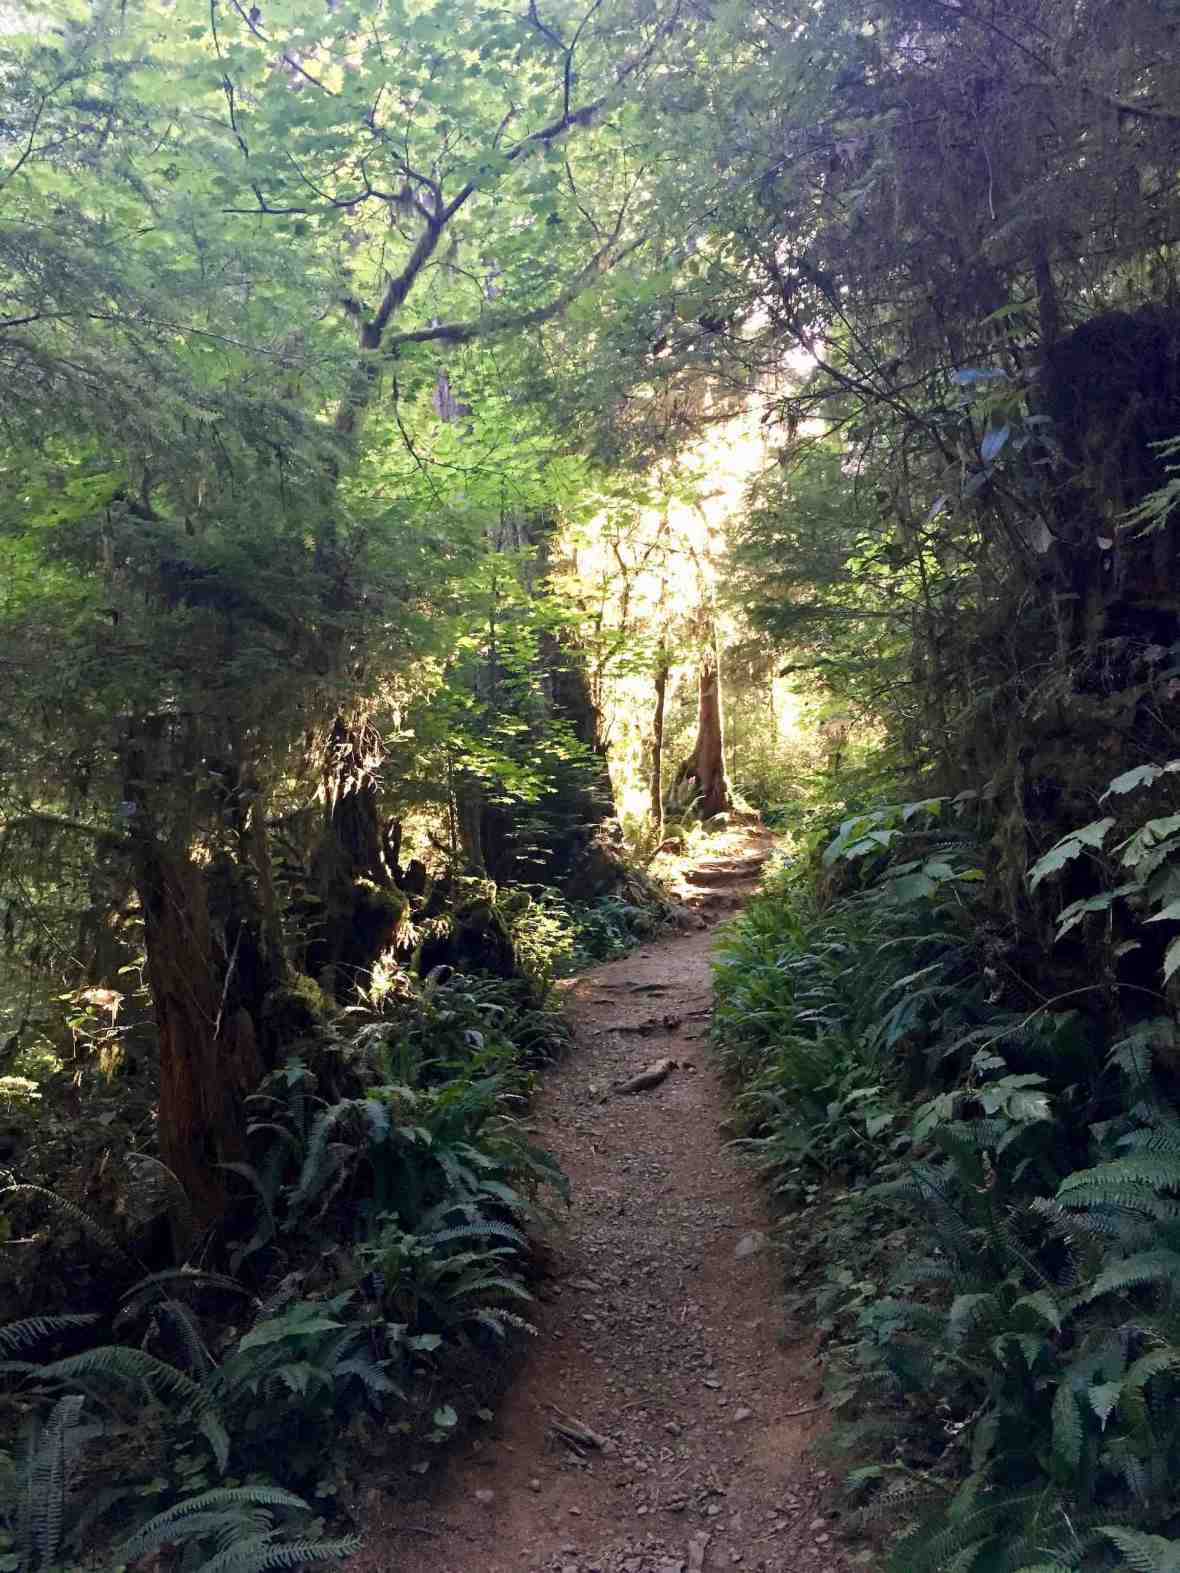 Hiking the Rainforest Nature Trail in the Quinault Valley Olympic National Forest